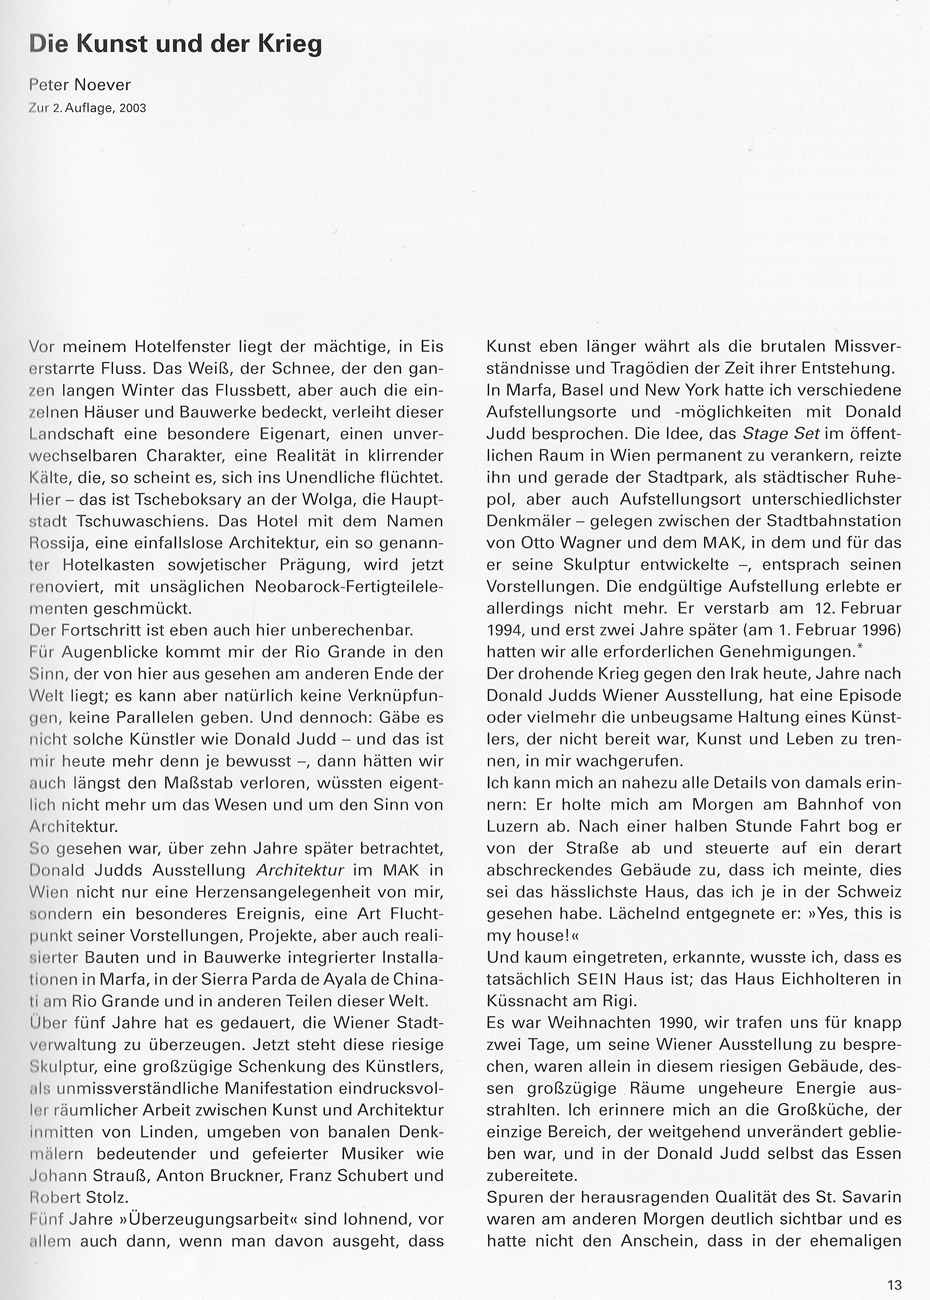 essay on the first gulf war Media at war essay because the first president bush and his administration did not want the first gulf war to be another vietnam, they restricted the press's access to information to the press (greenberg 7.